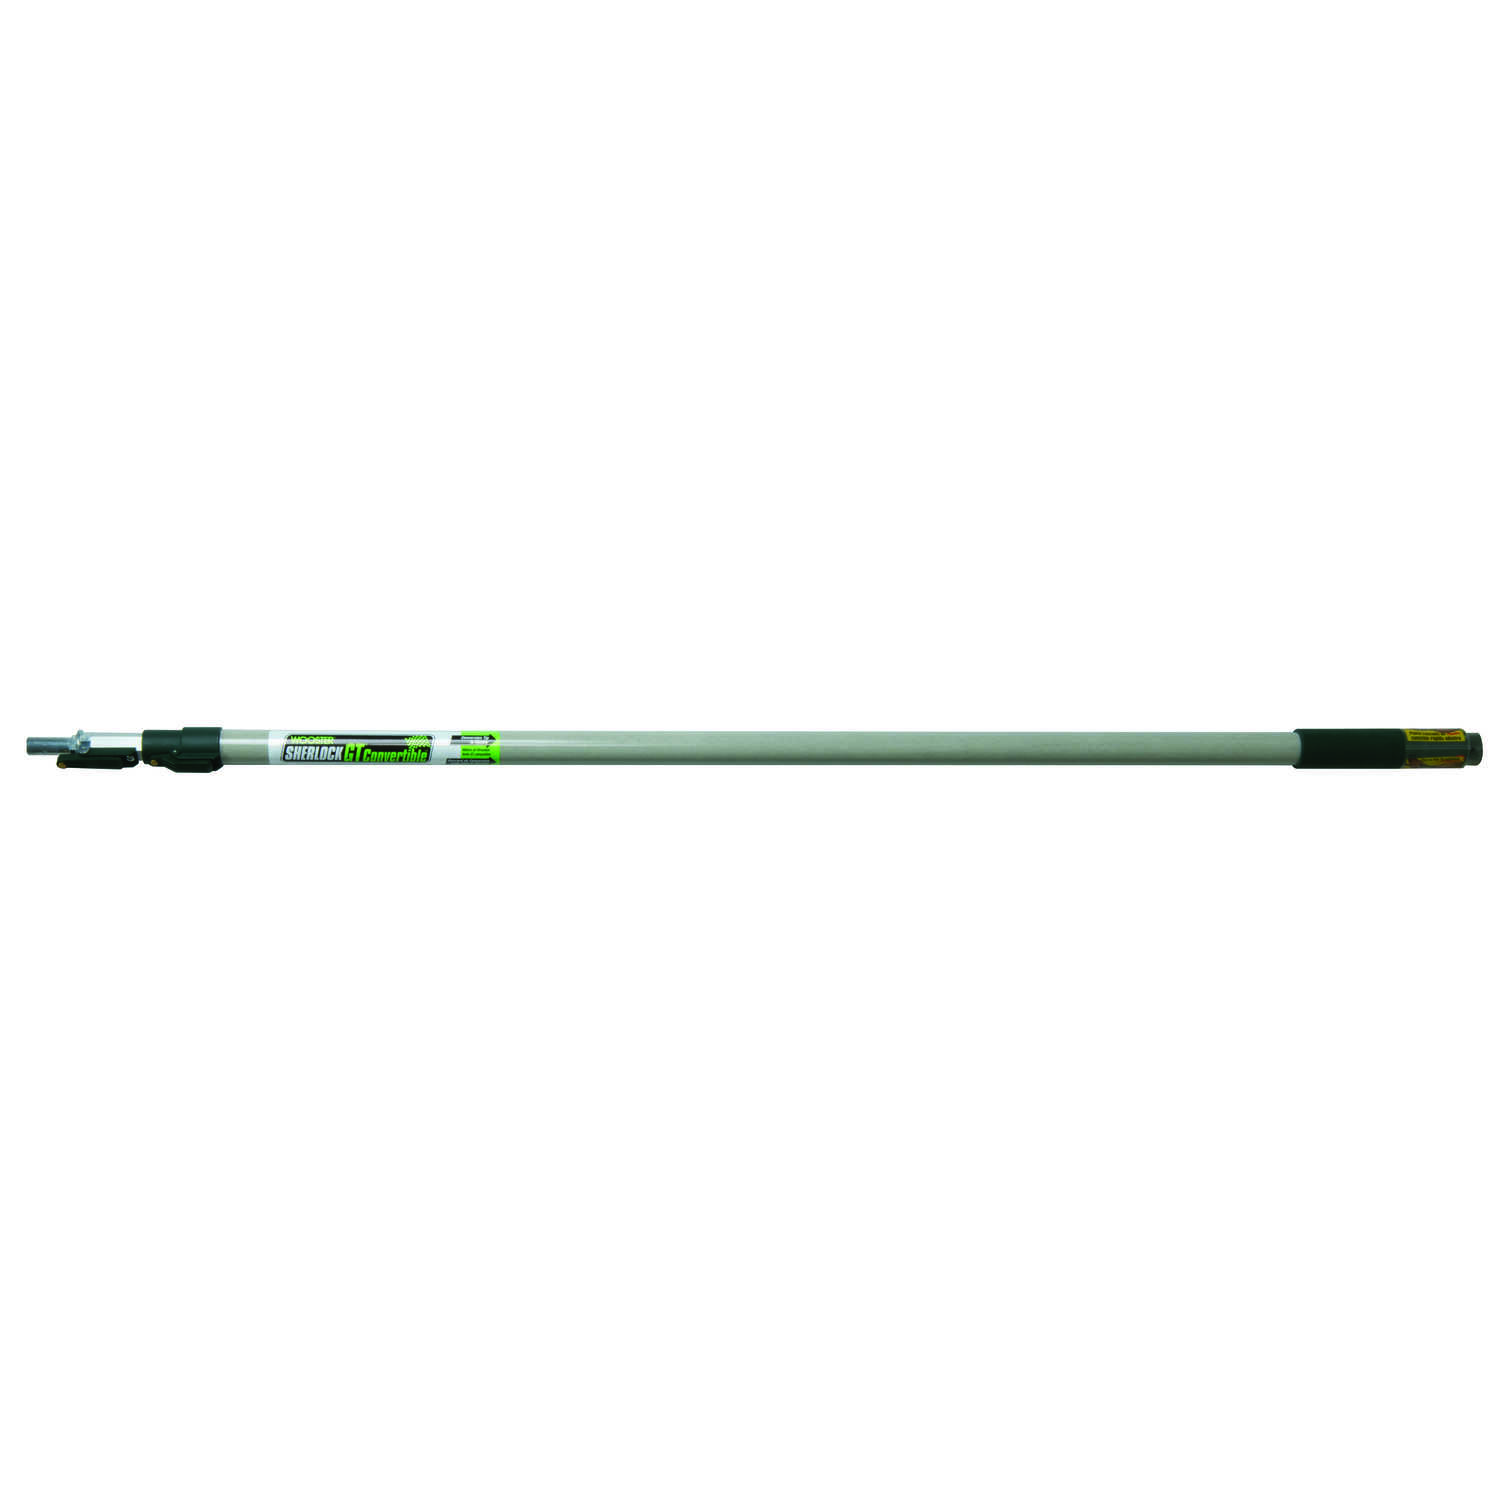 Wooster  Sherlock  Telescoping 4-8 ft. L x 1 in. Dia. Aluminum  Extension Pole  Black/White